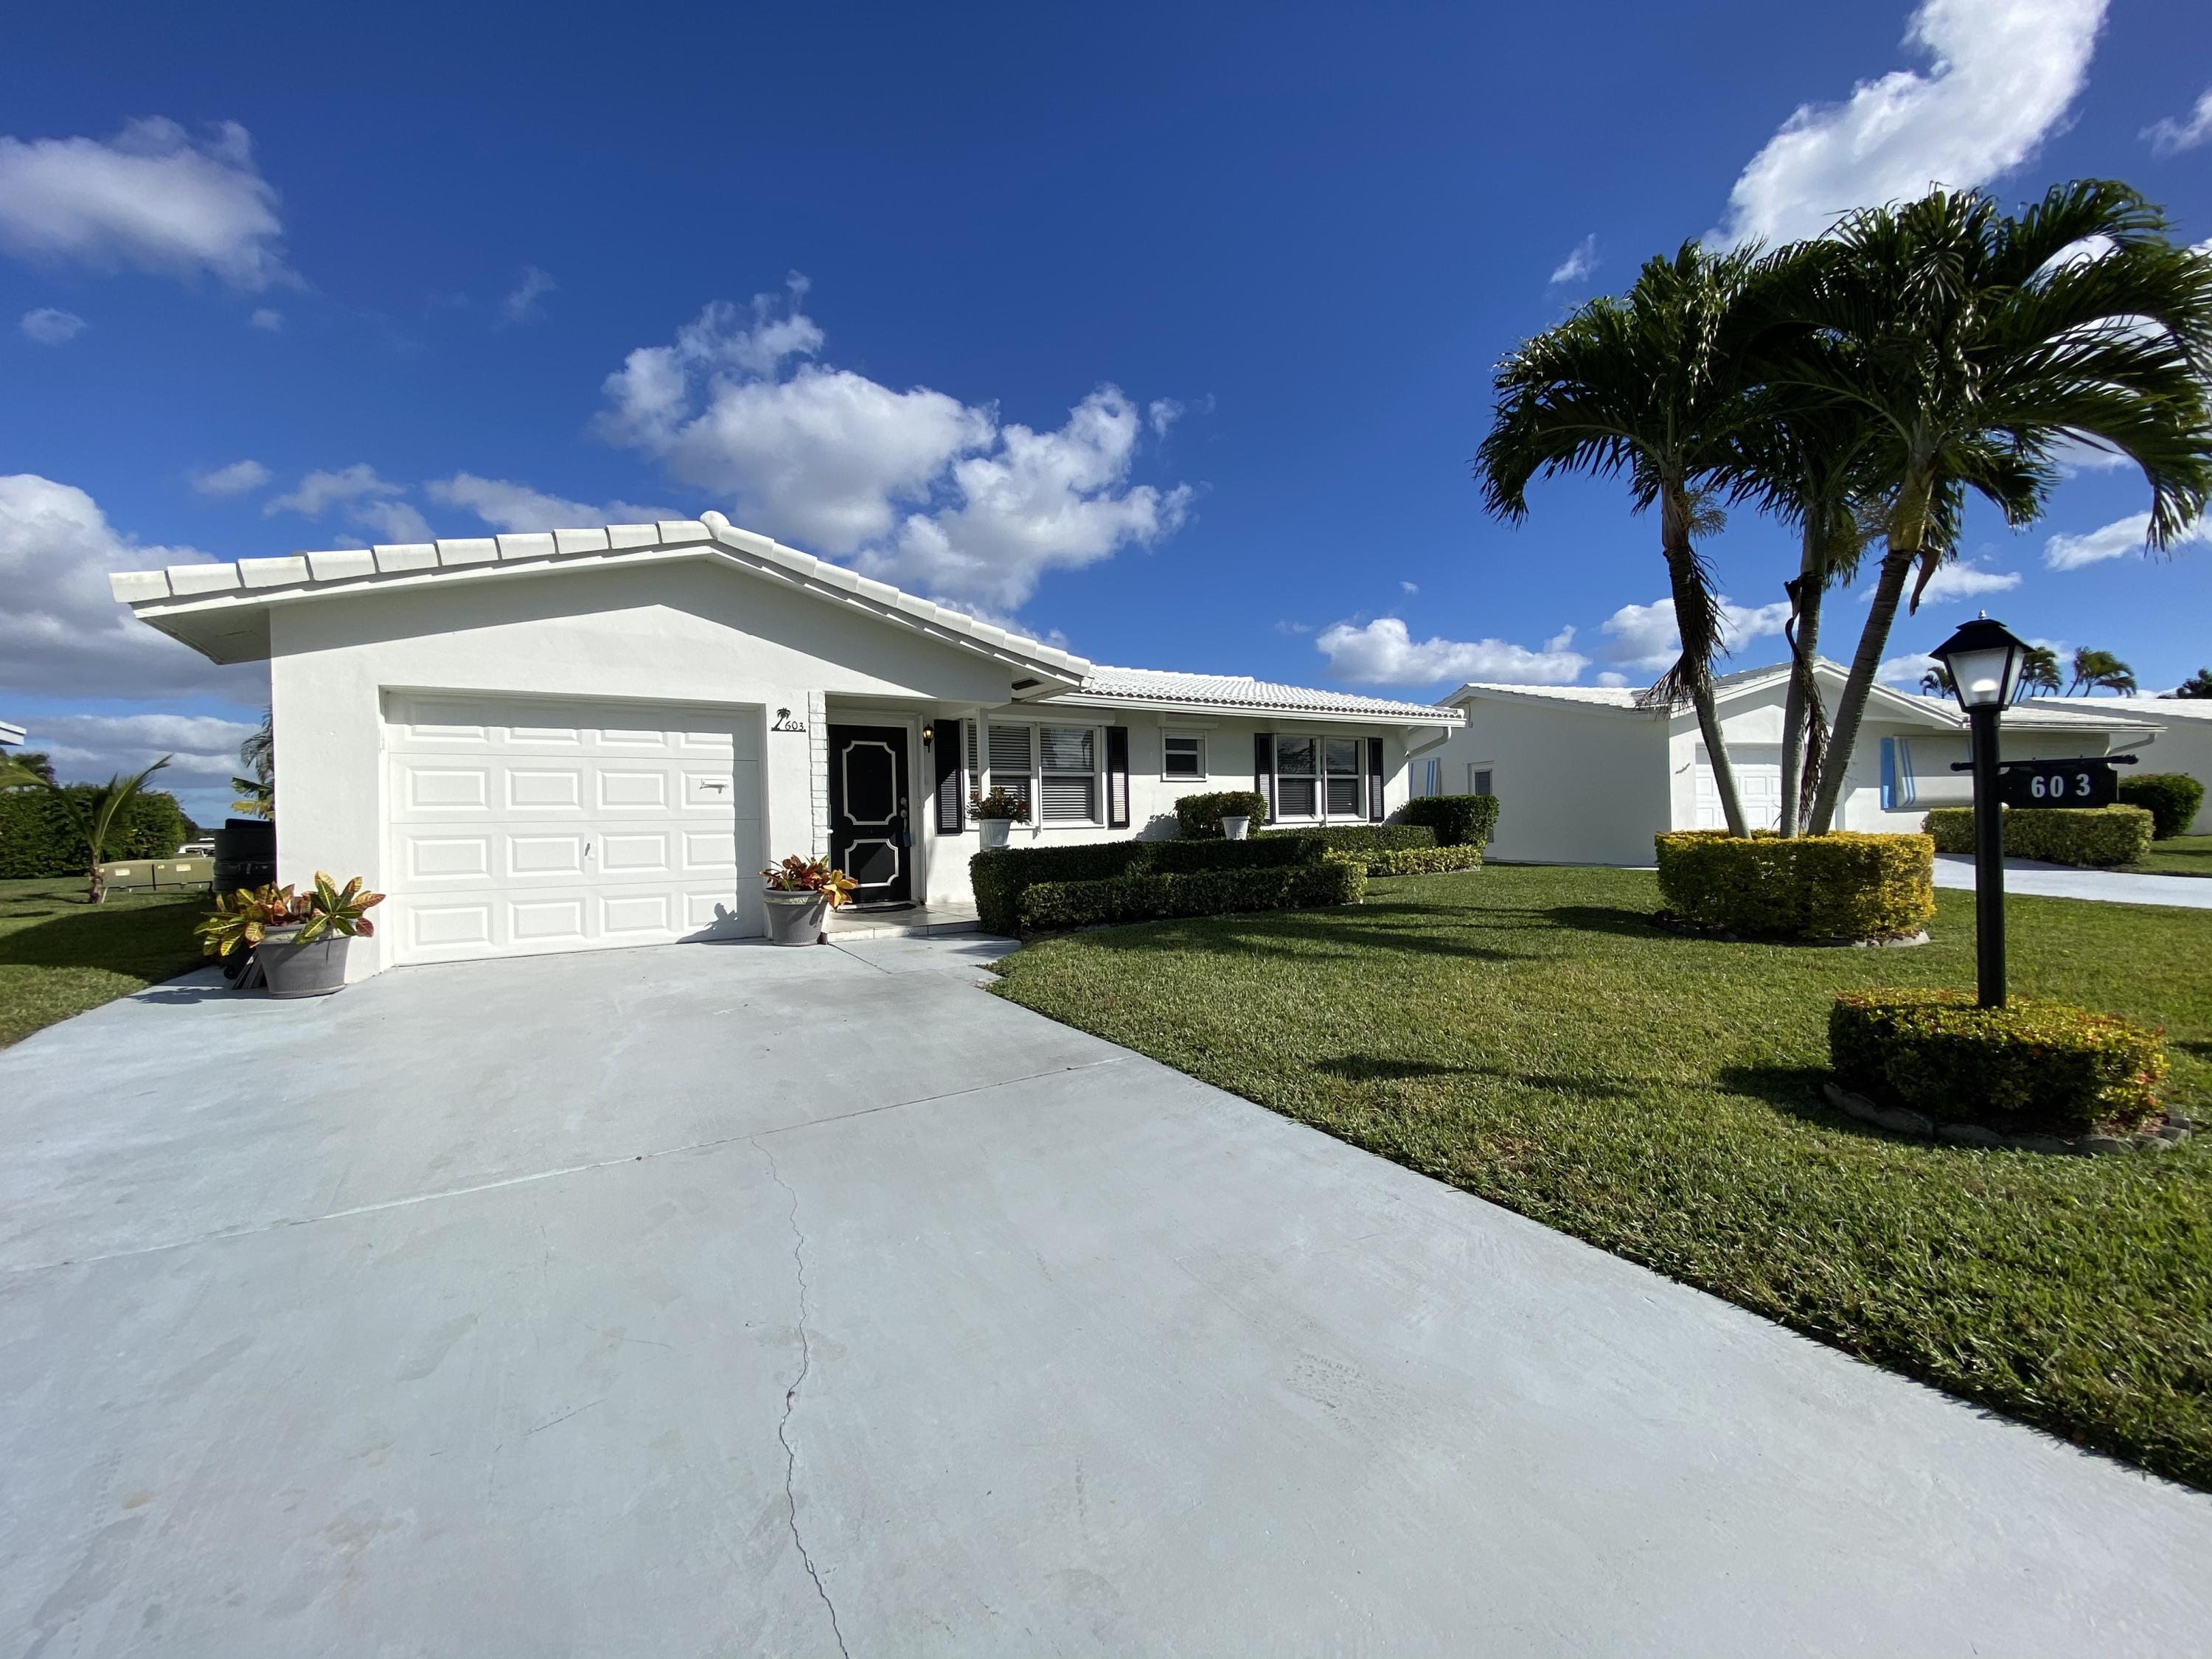 603 SW 15th Street  Boynton Beach FL 33426